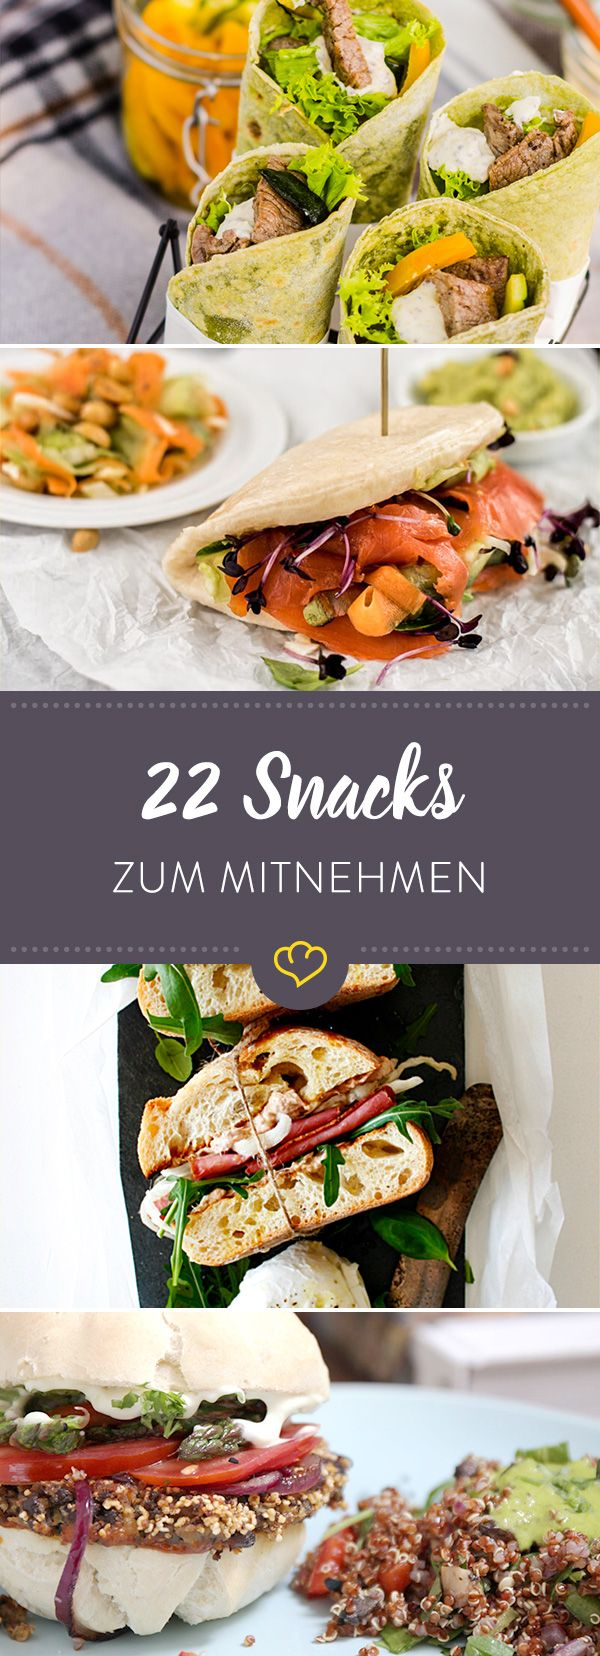 Photo of Your cutlery has a break: 22 hearty snacks to take away